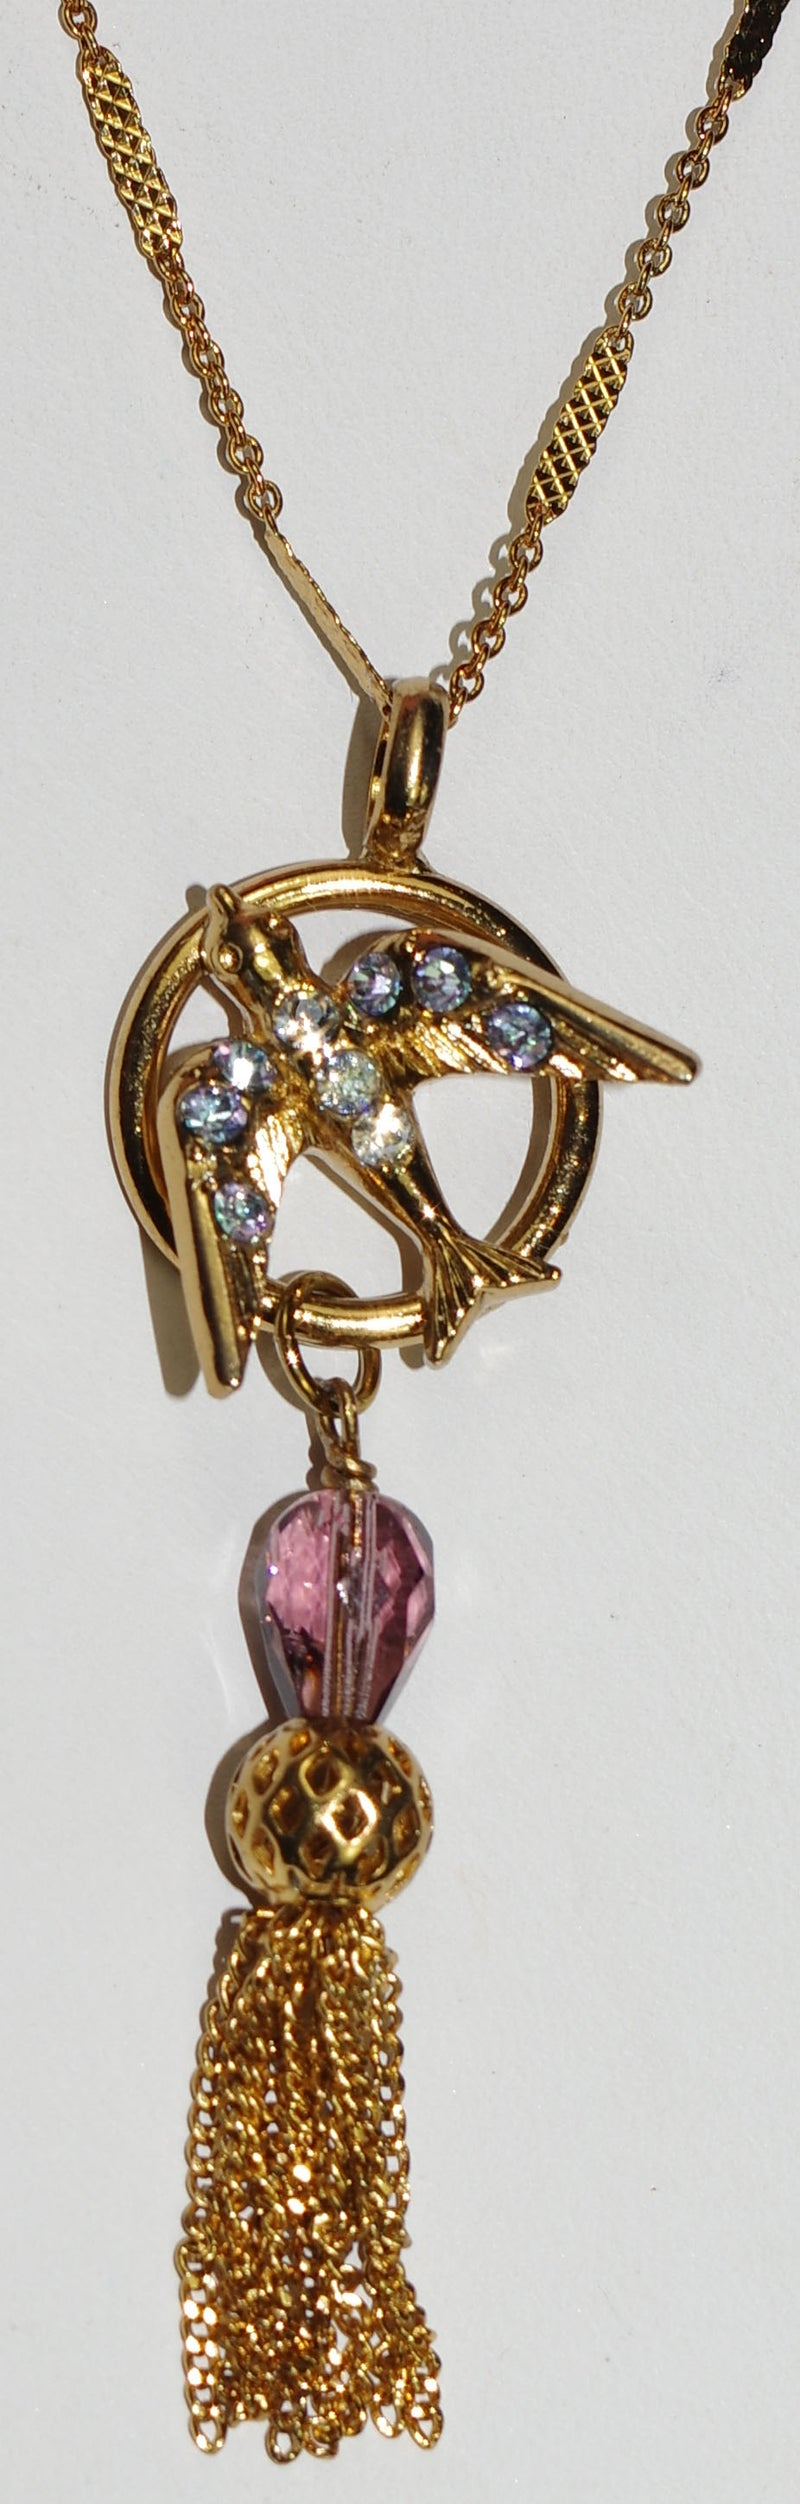 "MARIANA PENDANT ST LUCIA: purple, clear stones in 2.5"" pendant, european gold setting, 32"" adjustable chain"